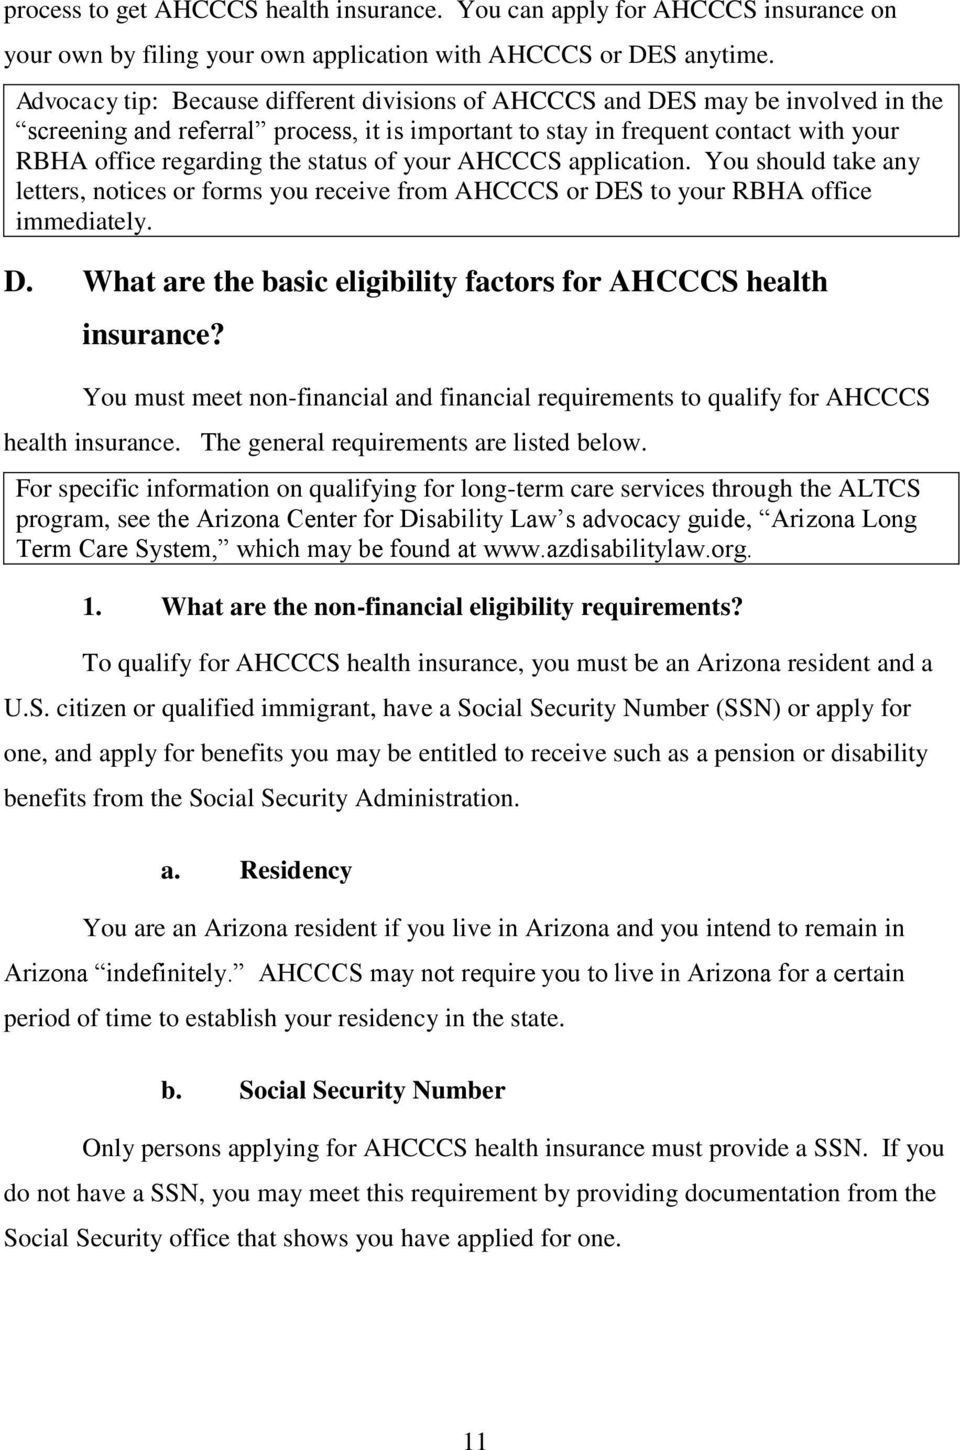 status of your AHCCCS application. You should take any letters, notices or forms you receive from AHCCCS or DES to your RBHA office immediately. D. What are the basic eligibility factors for AHCCCS health insurance?